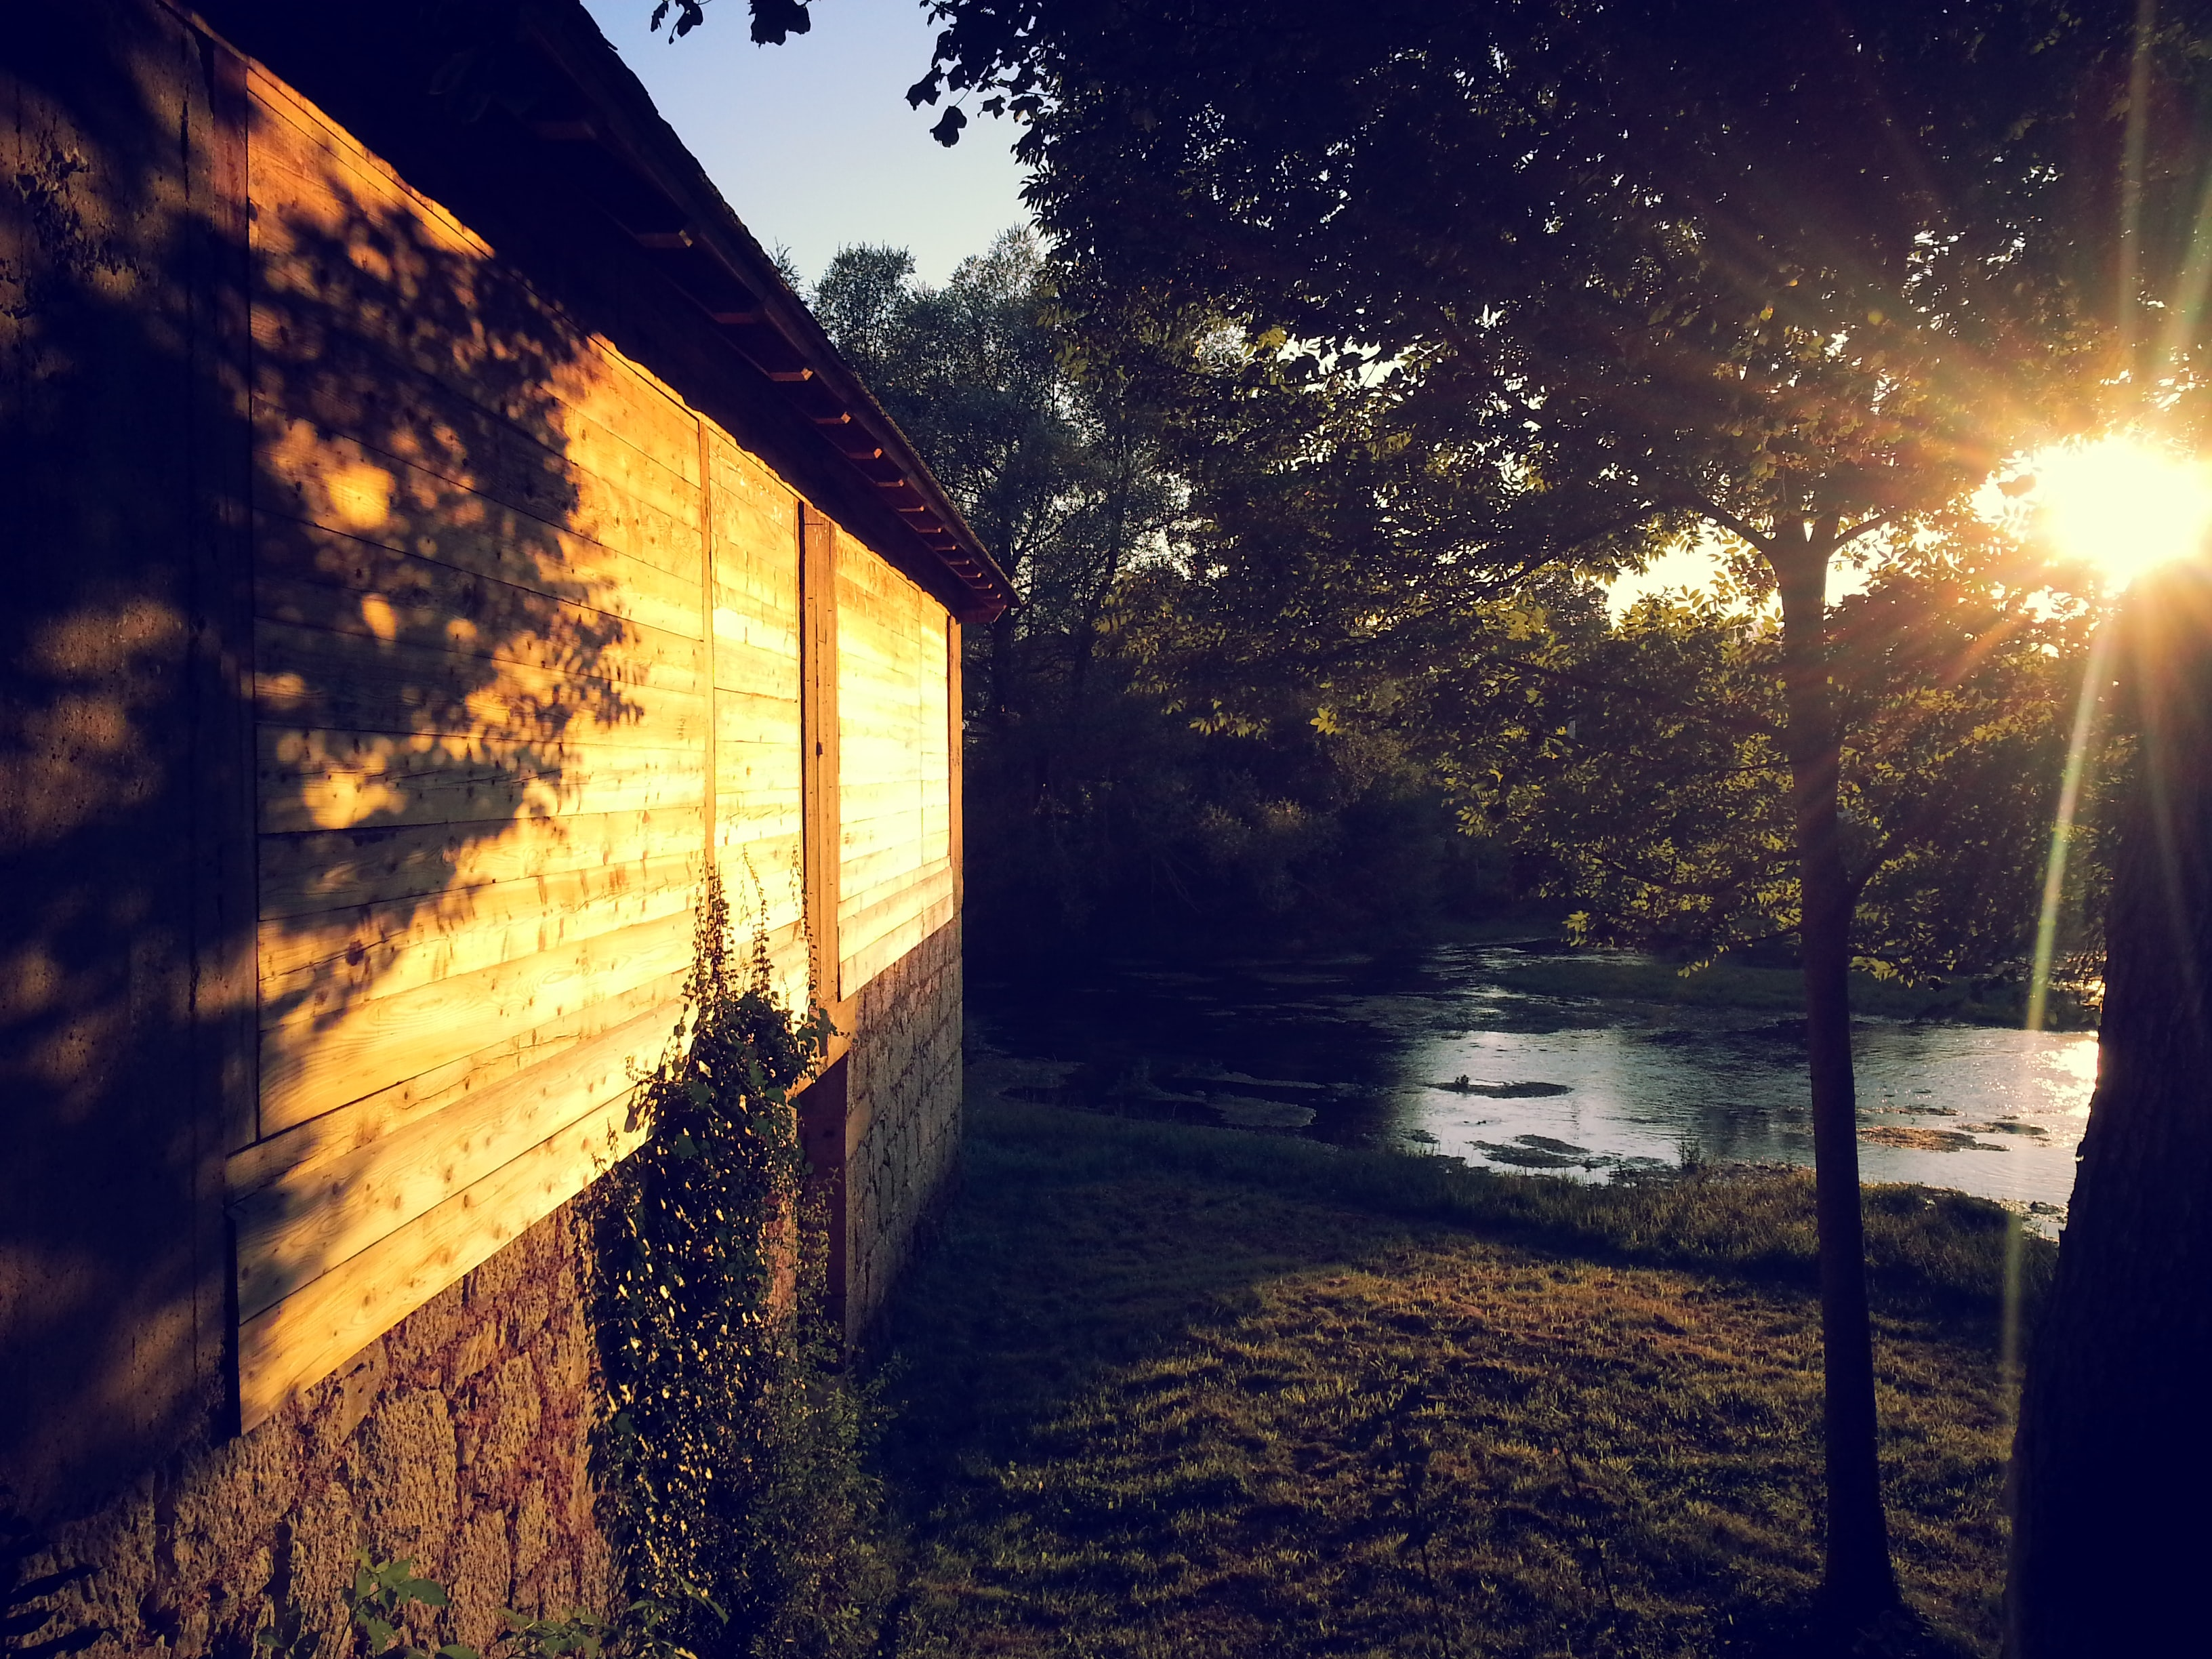 Evening sun over trees near a river and a house